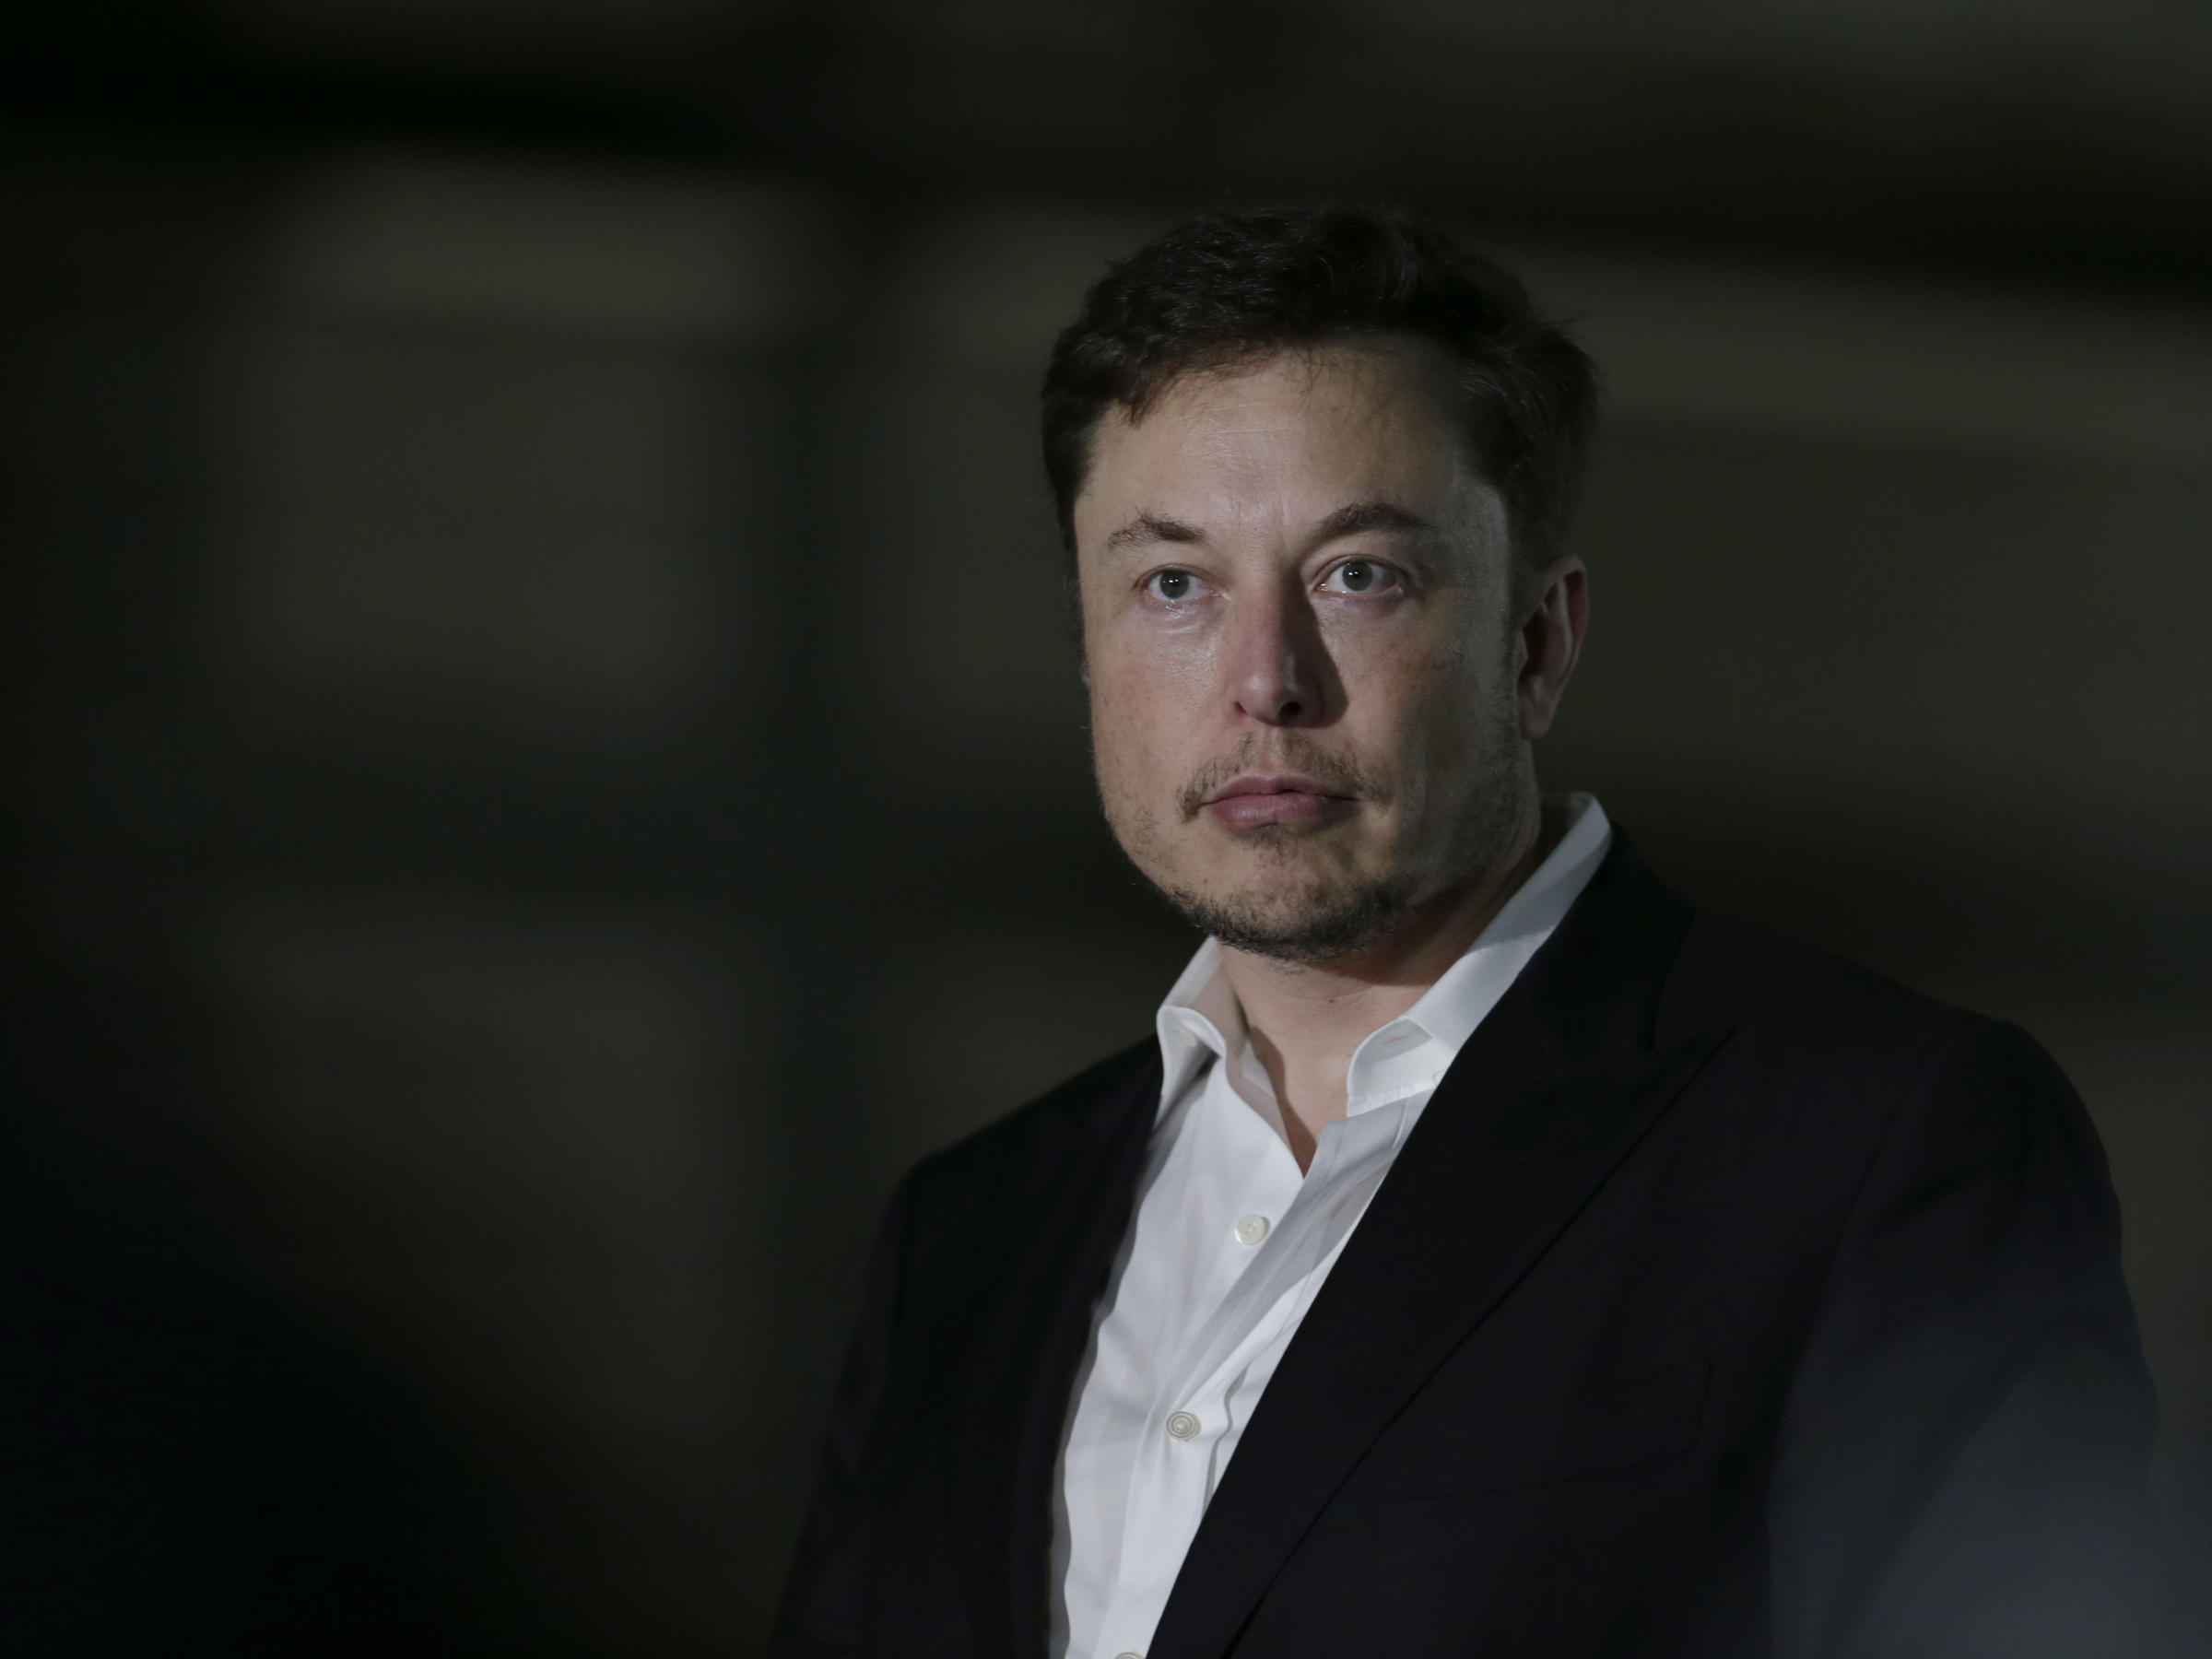 Erratic Musk is damaging Tesla, claims analyst